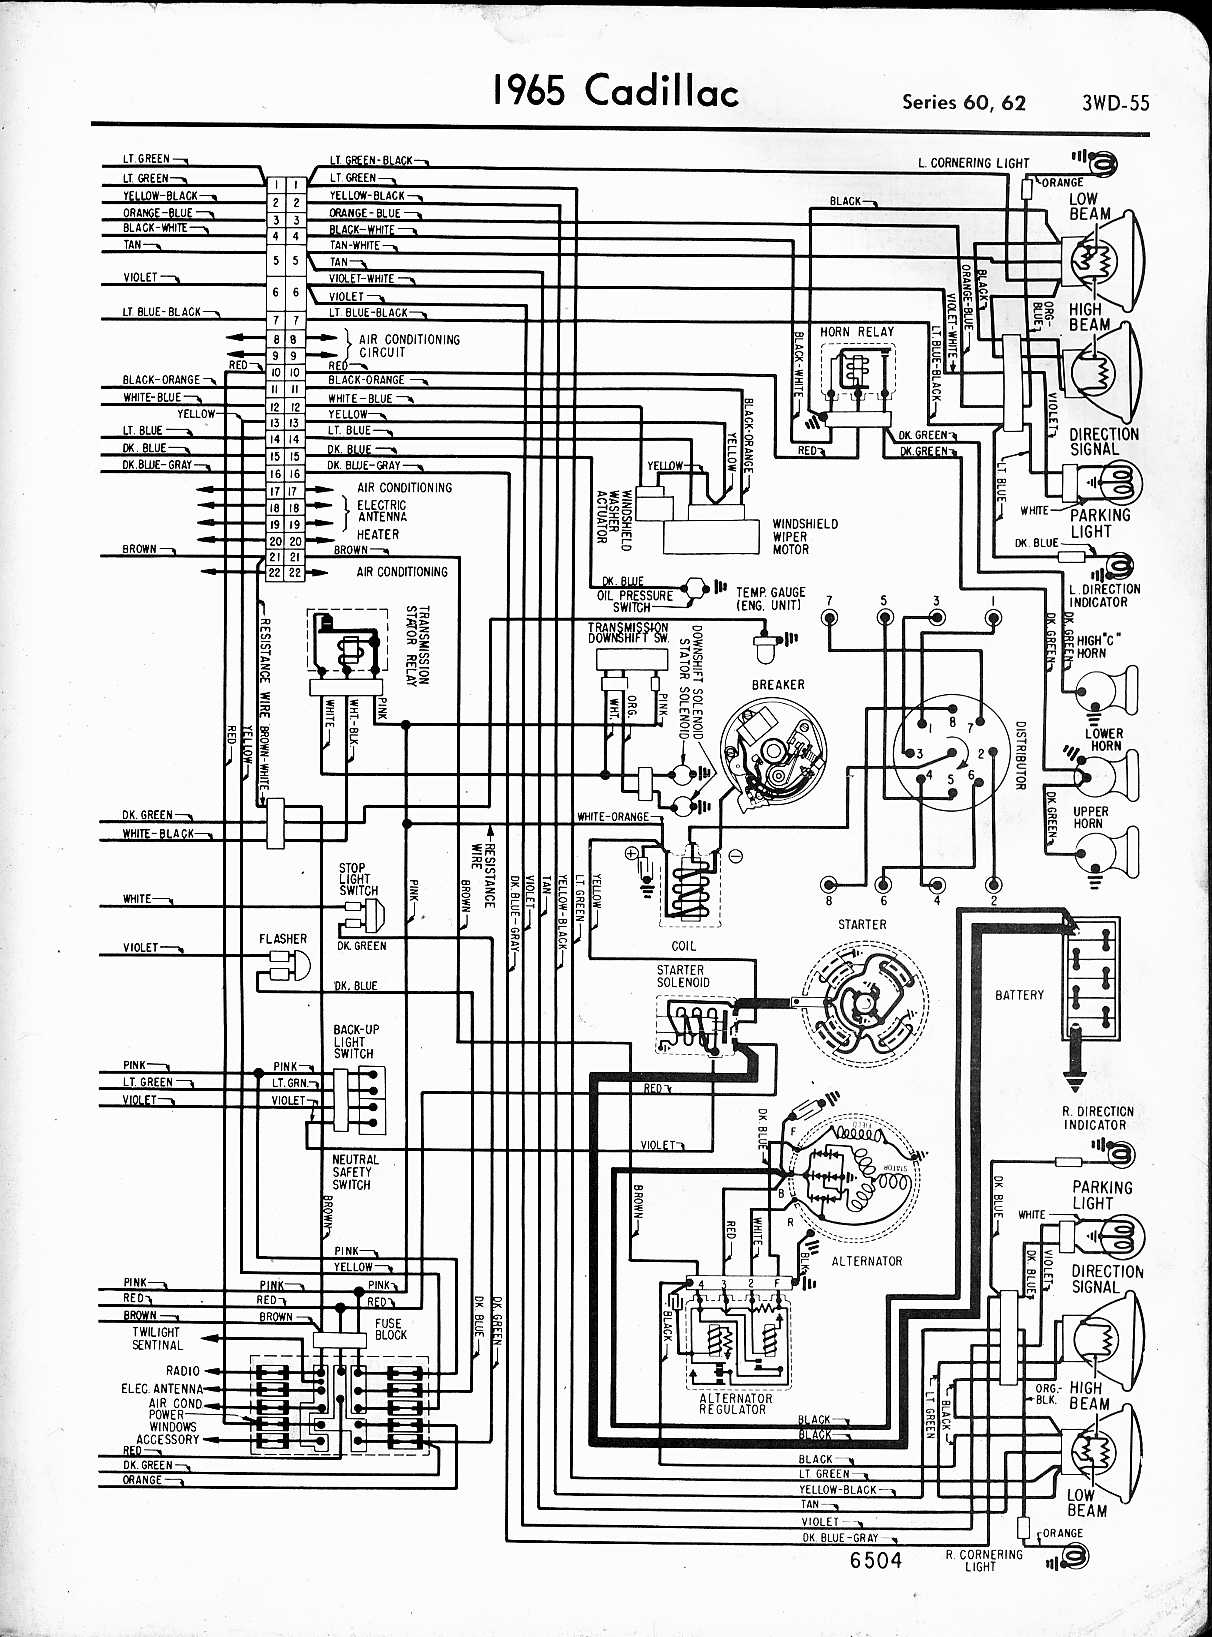 cadillac wiring diagrams 1957 1965 rh oldcarmanualproject com Speaker Wiring Diagrams for a 59 Cadillac Cadillac Wiring Diagrams Automotive